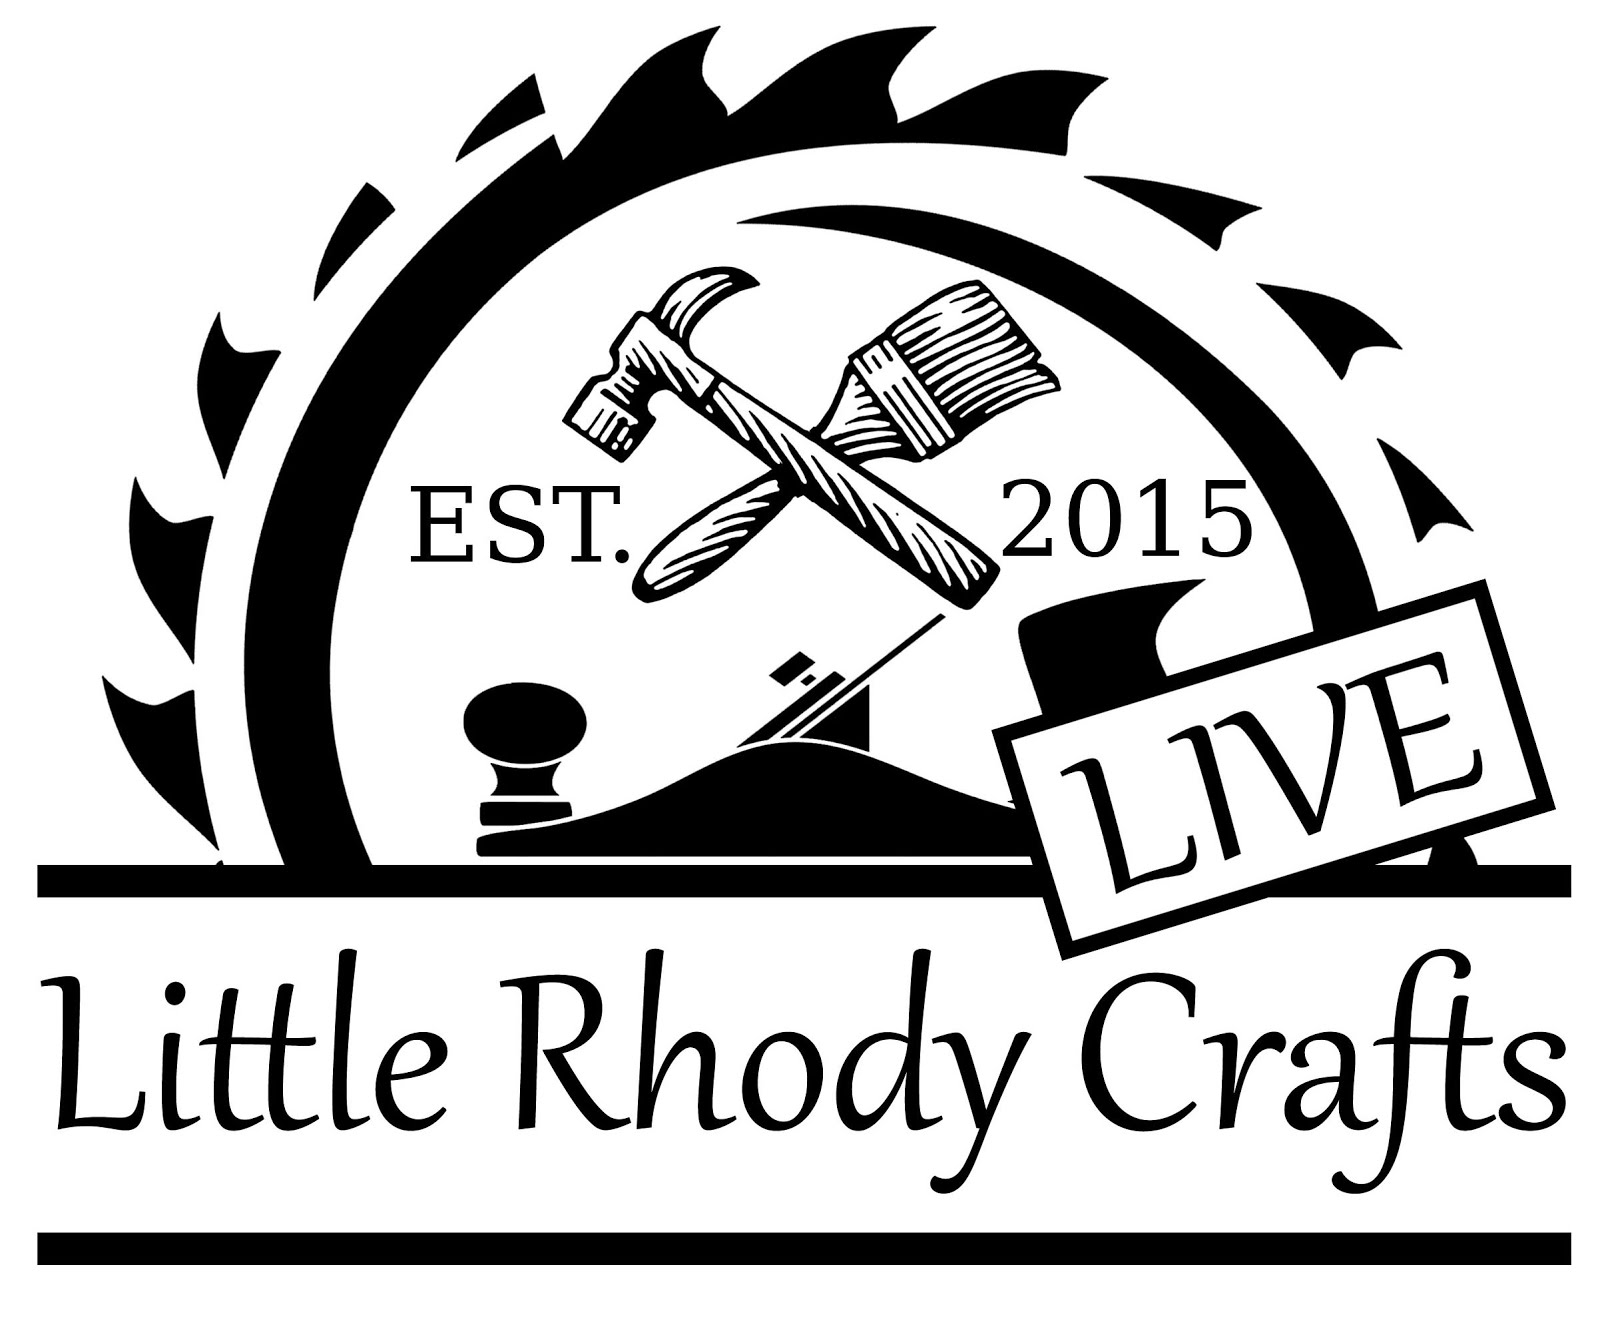 Little Rhody Crafts Live